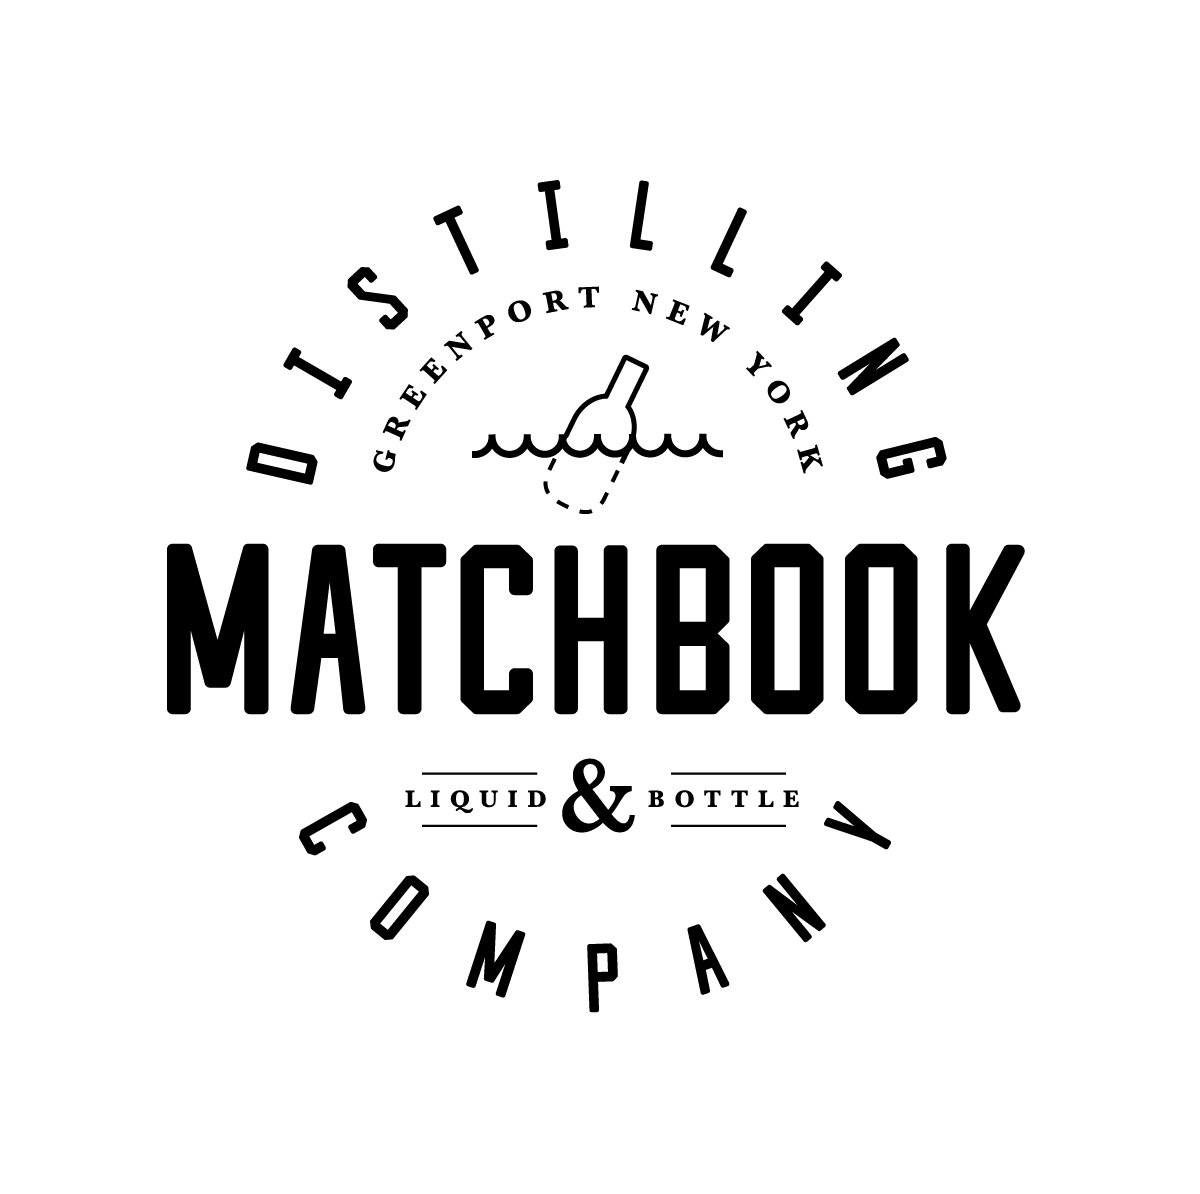 MATCHBOOK CO. copy.jpg